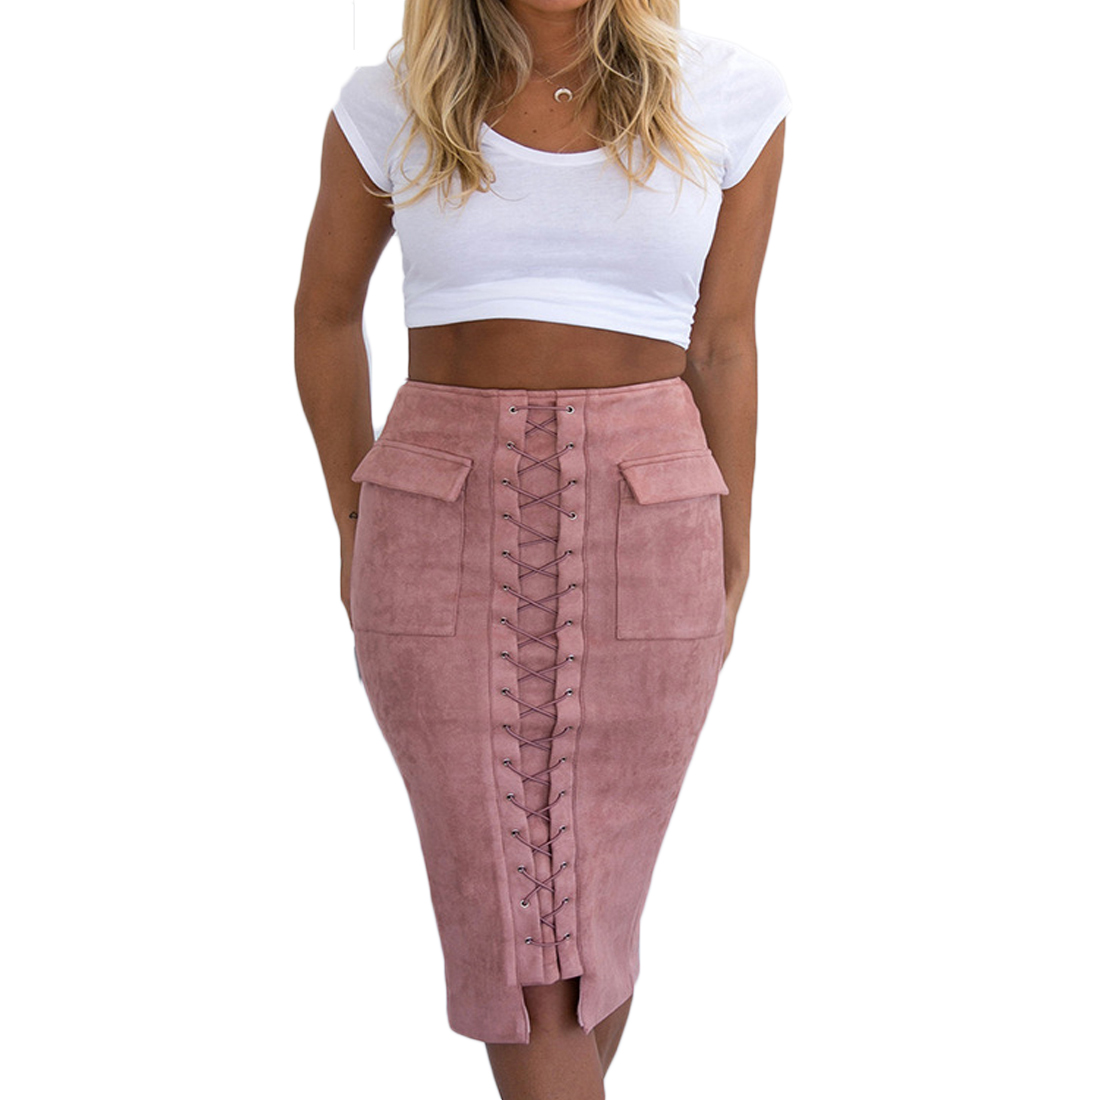 Compare Prices on Pink Bandage Skirt- Online Shopping/Buy Low ...